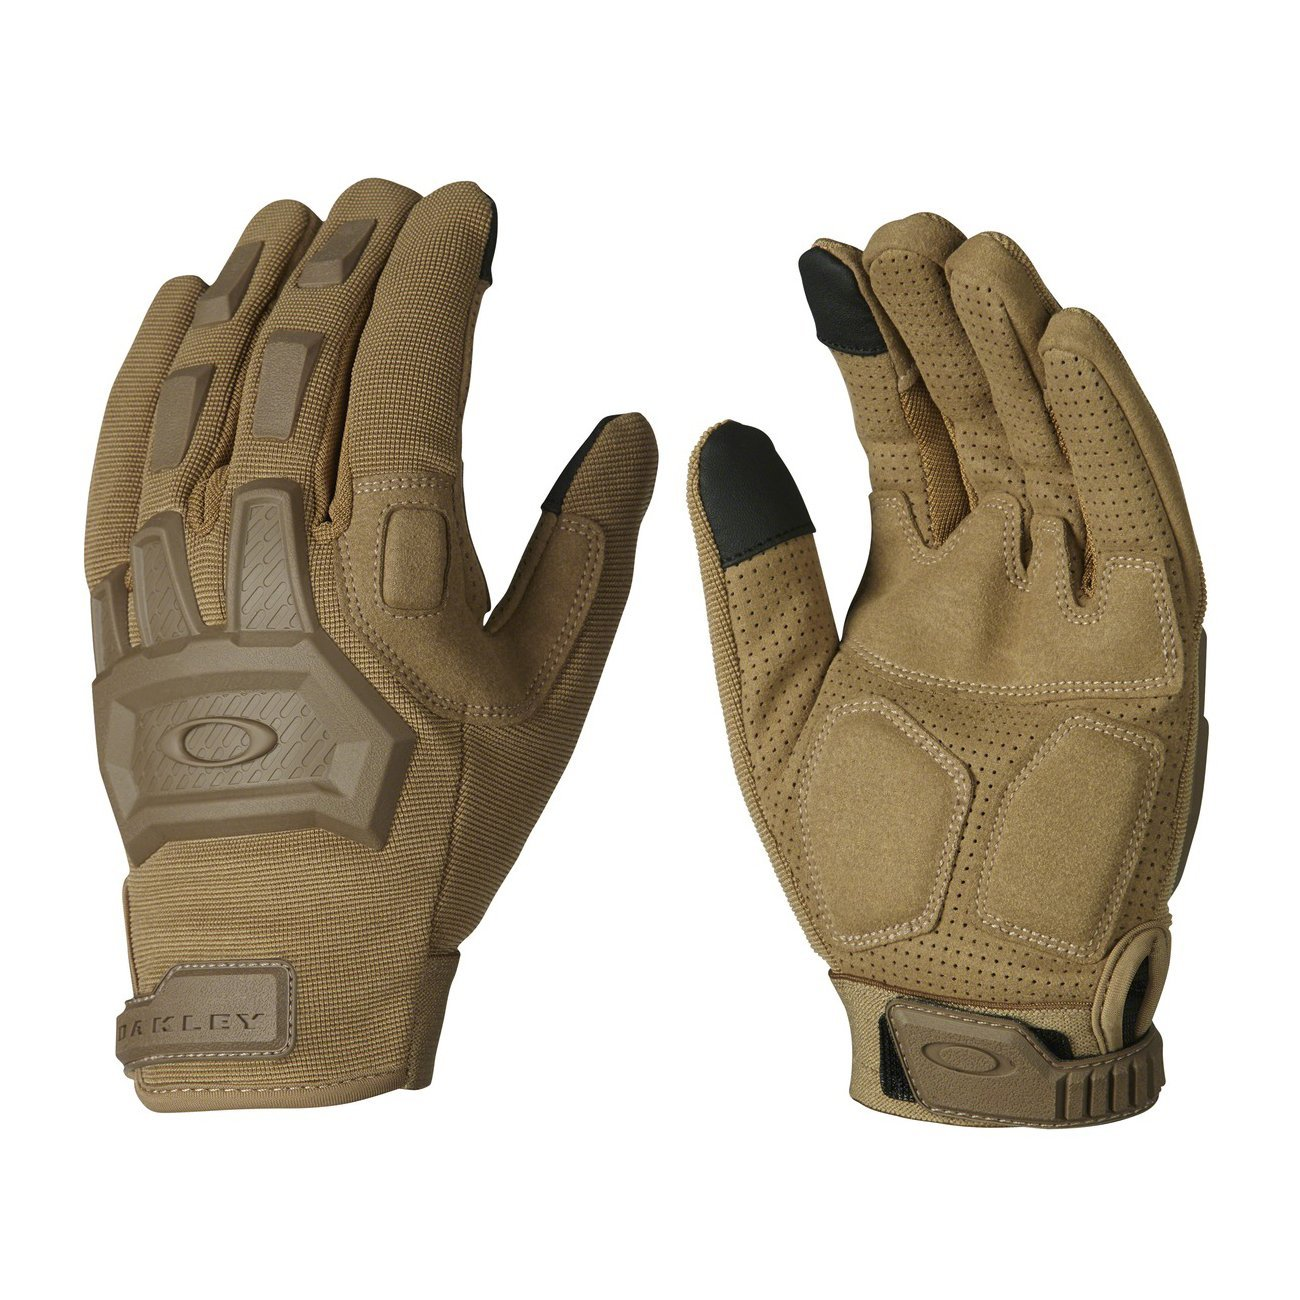 Oakley Flexion Glove-